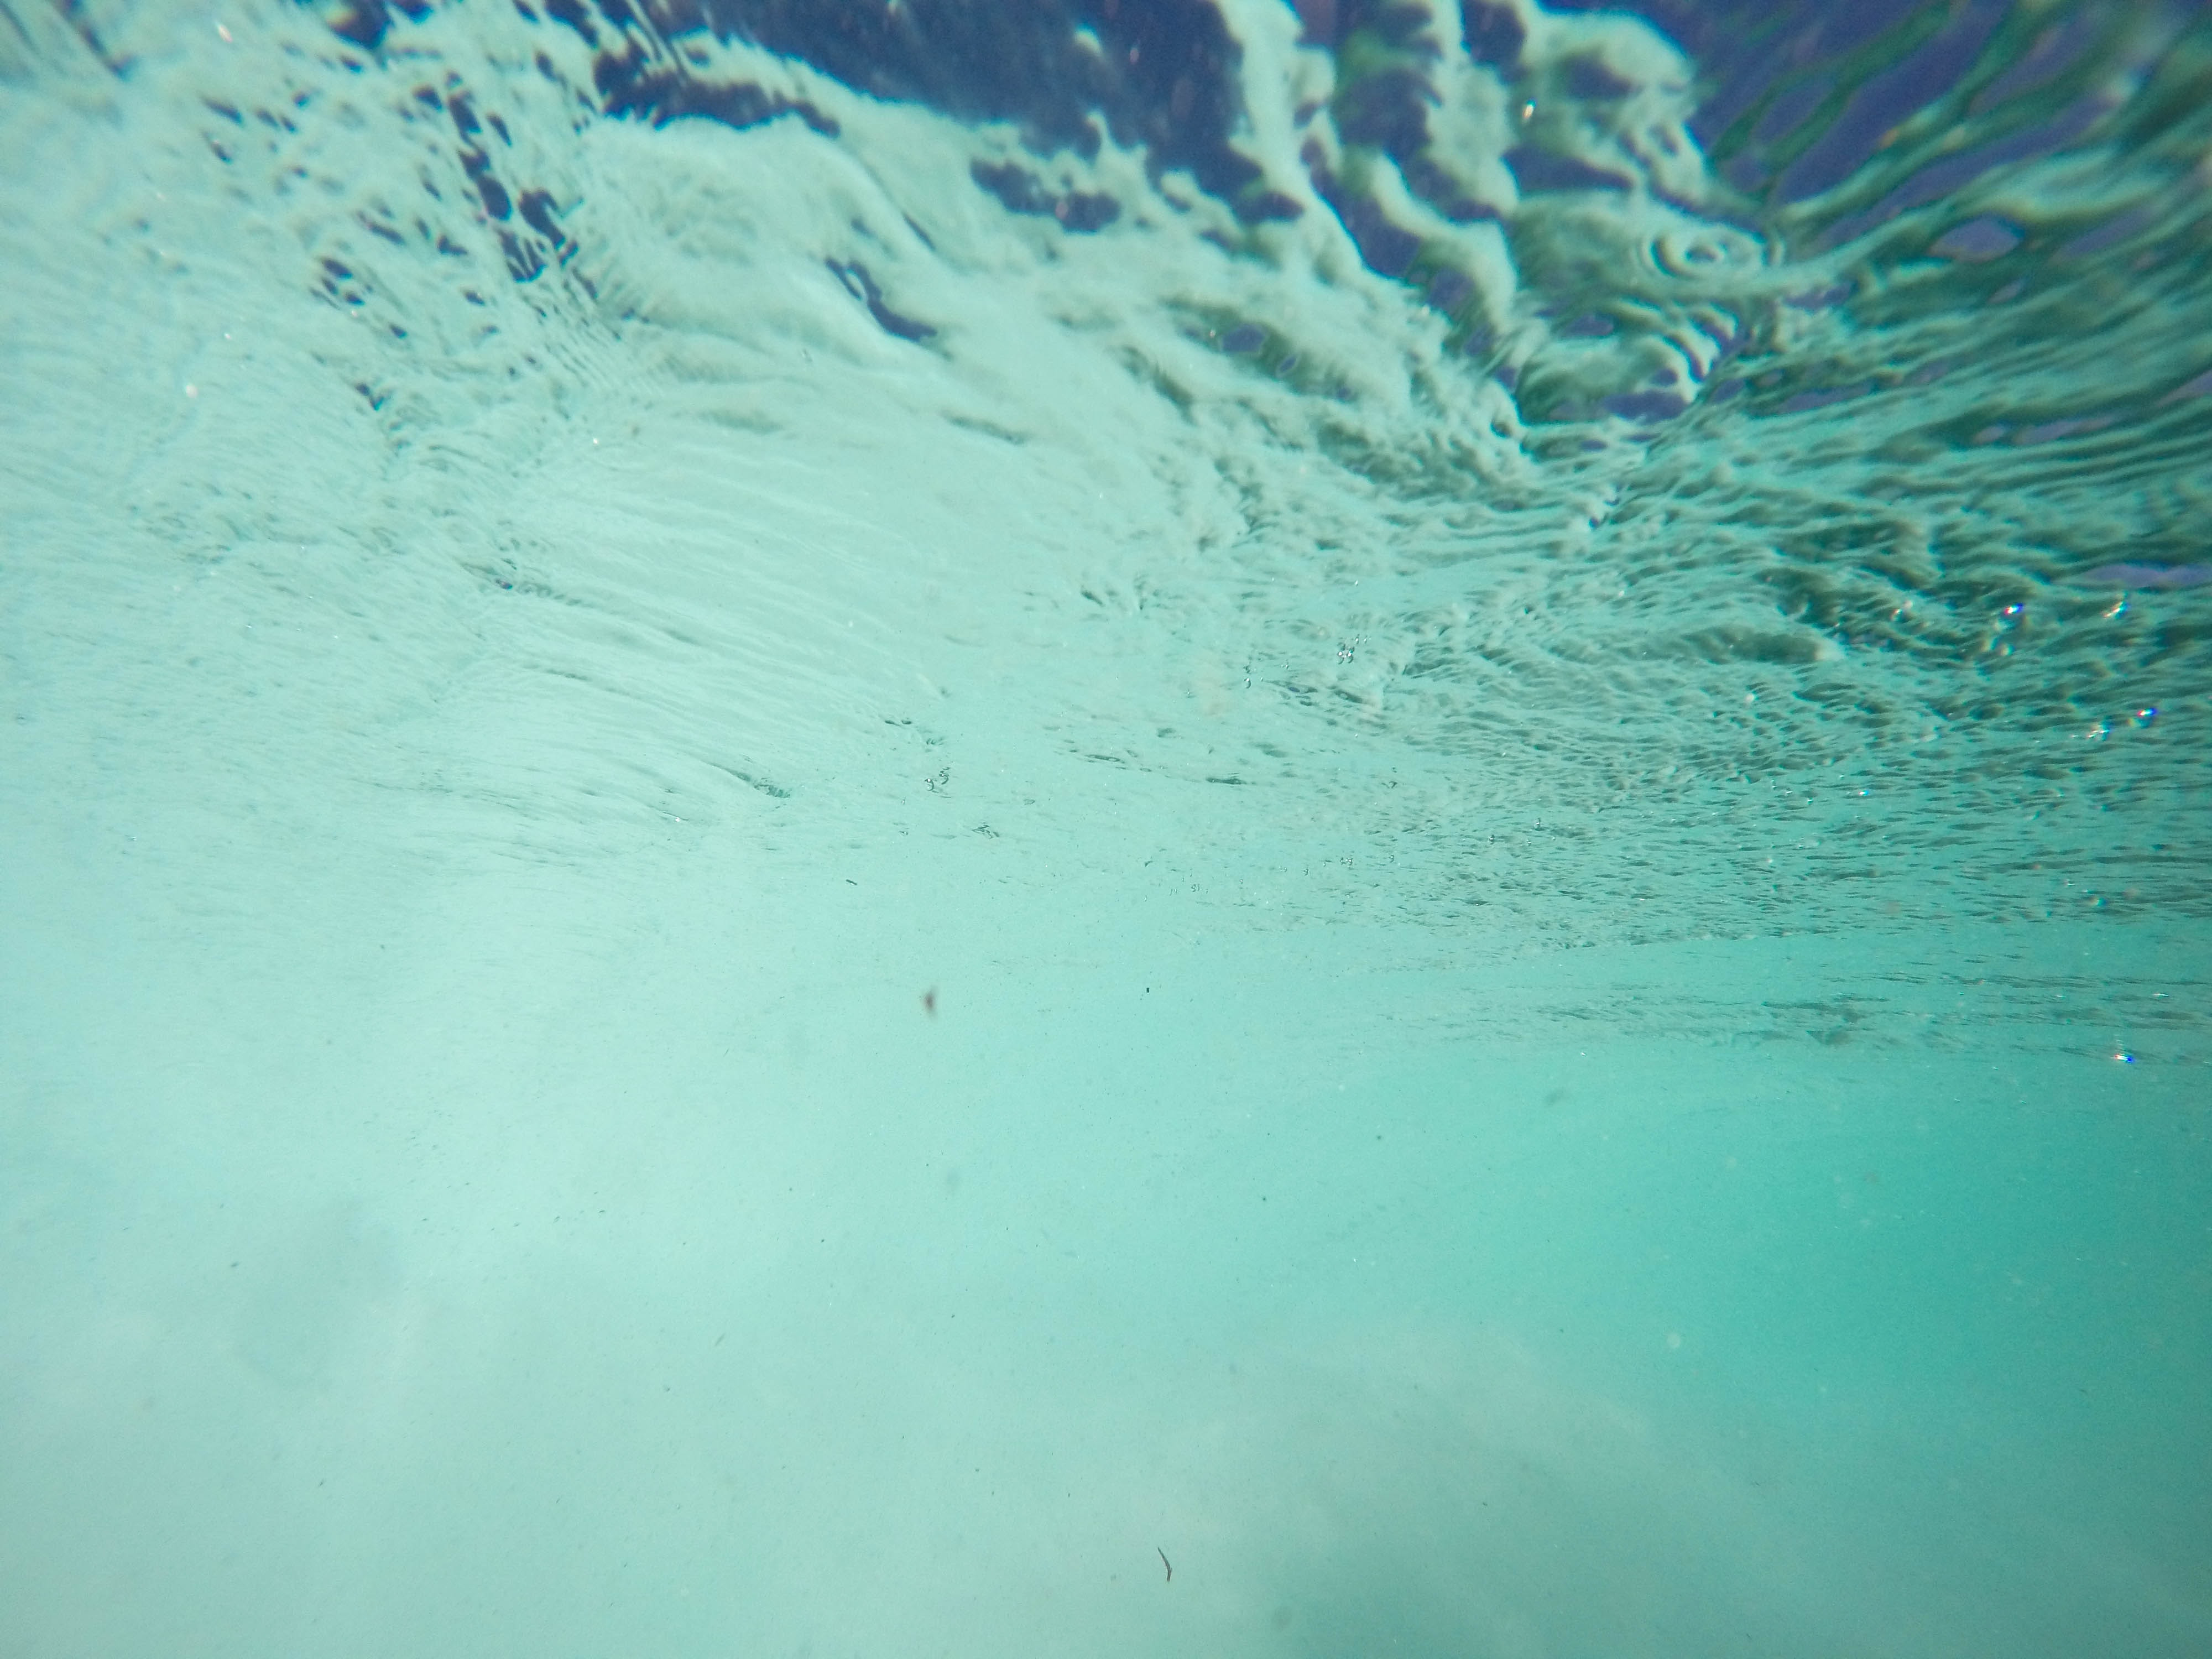 Submerged in water.